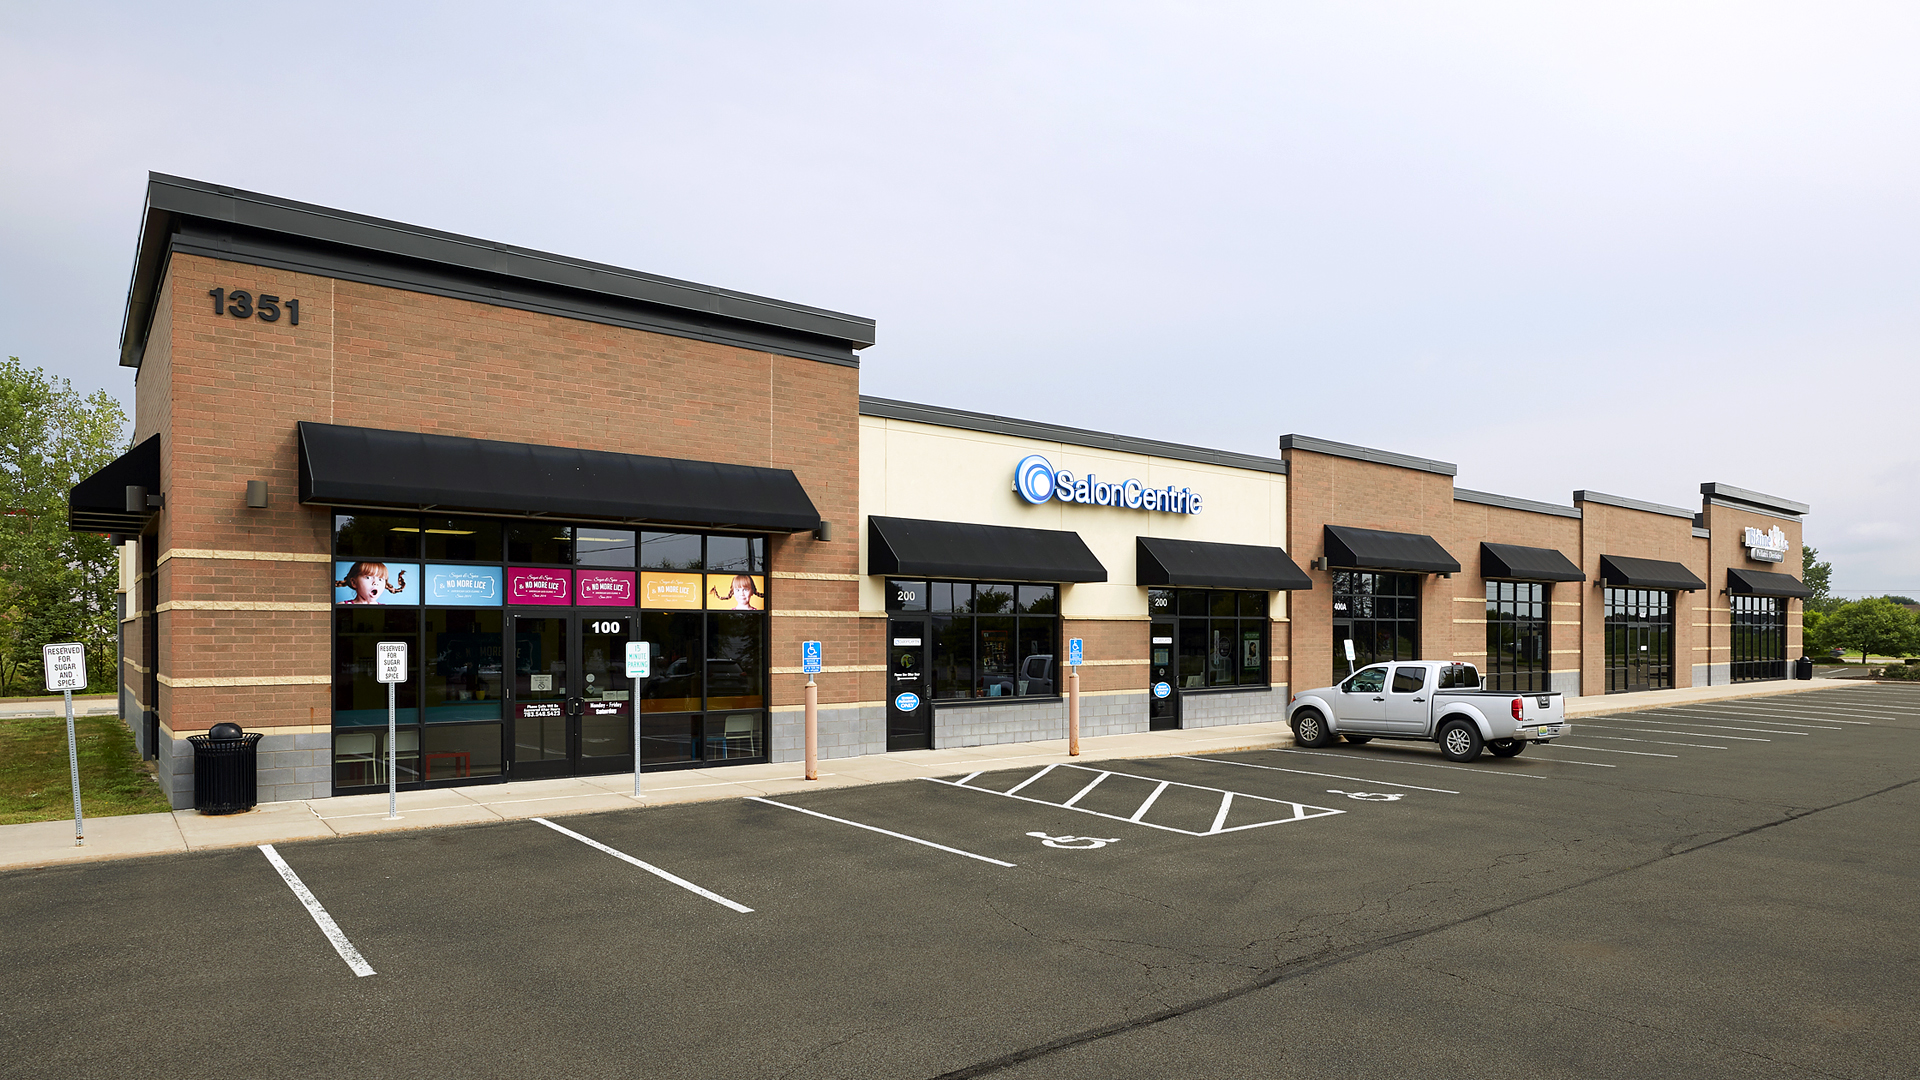 Blaine Crossing Retail Strip Mall Blaine MN Front Exterior